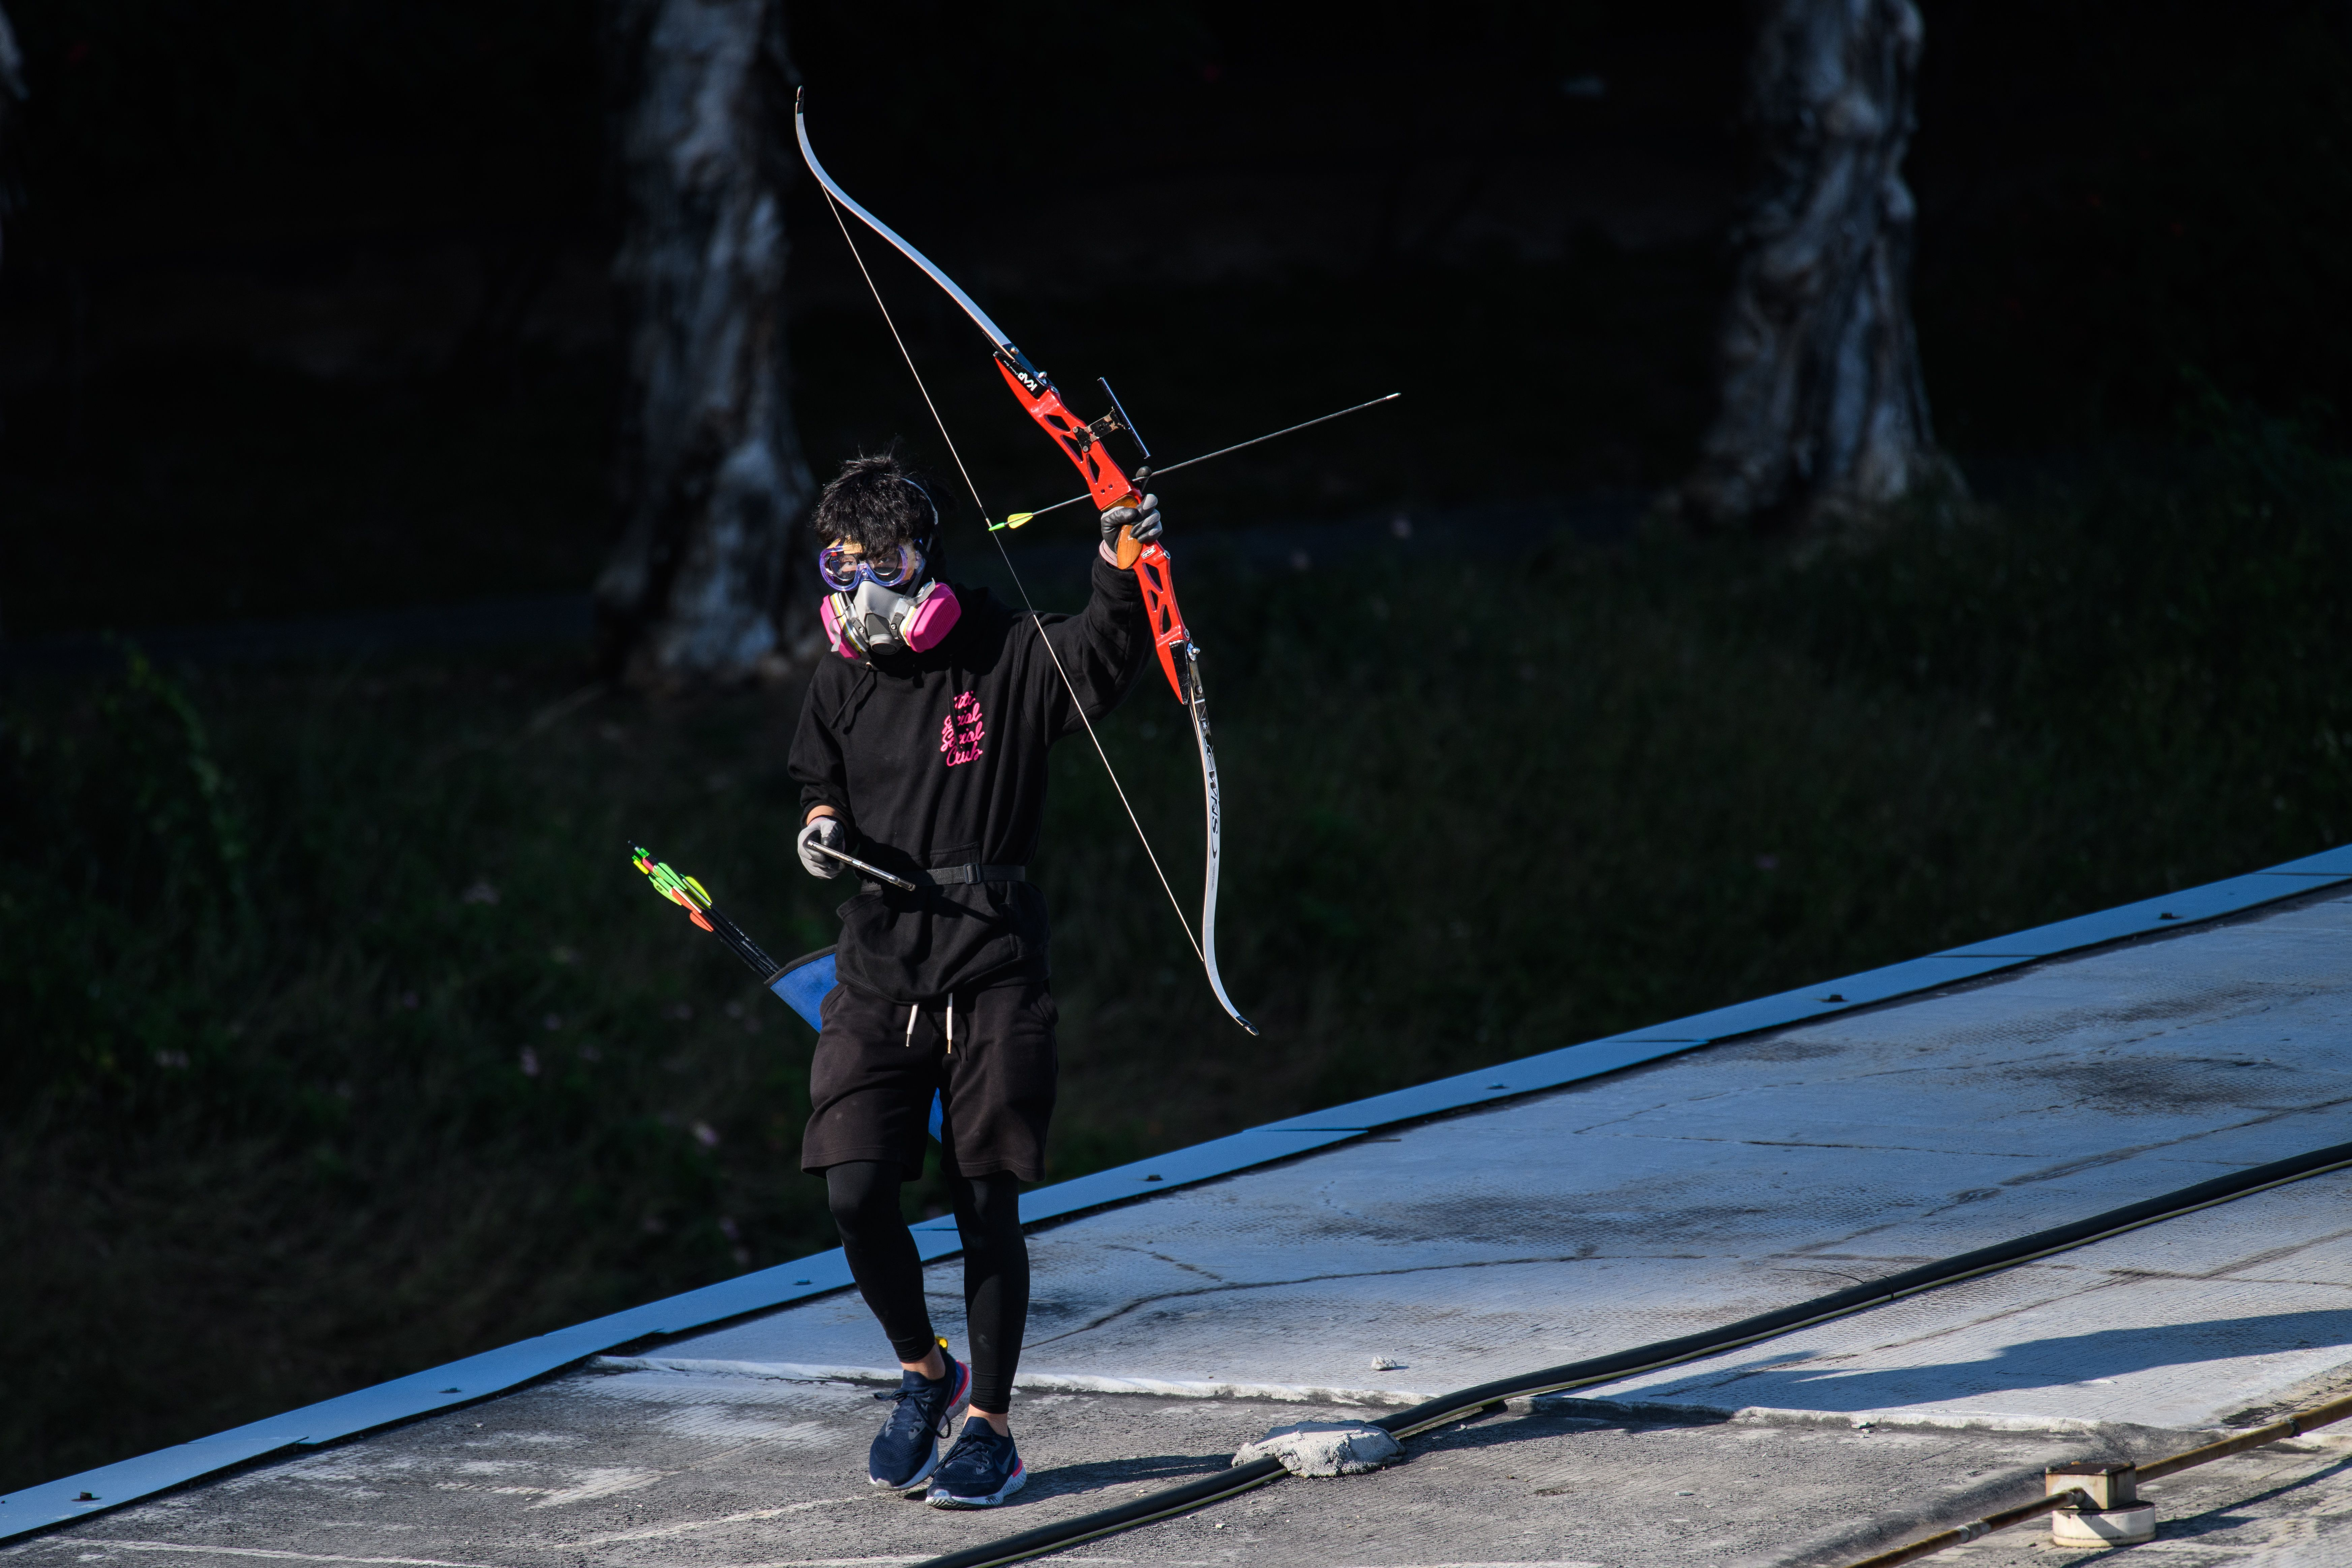 A protester walks with a bow and arrow near Hong Kong Polytechnic University on November 16.